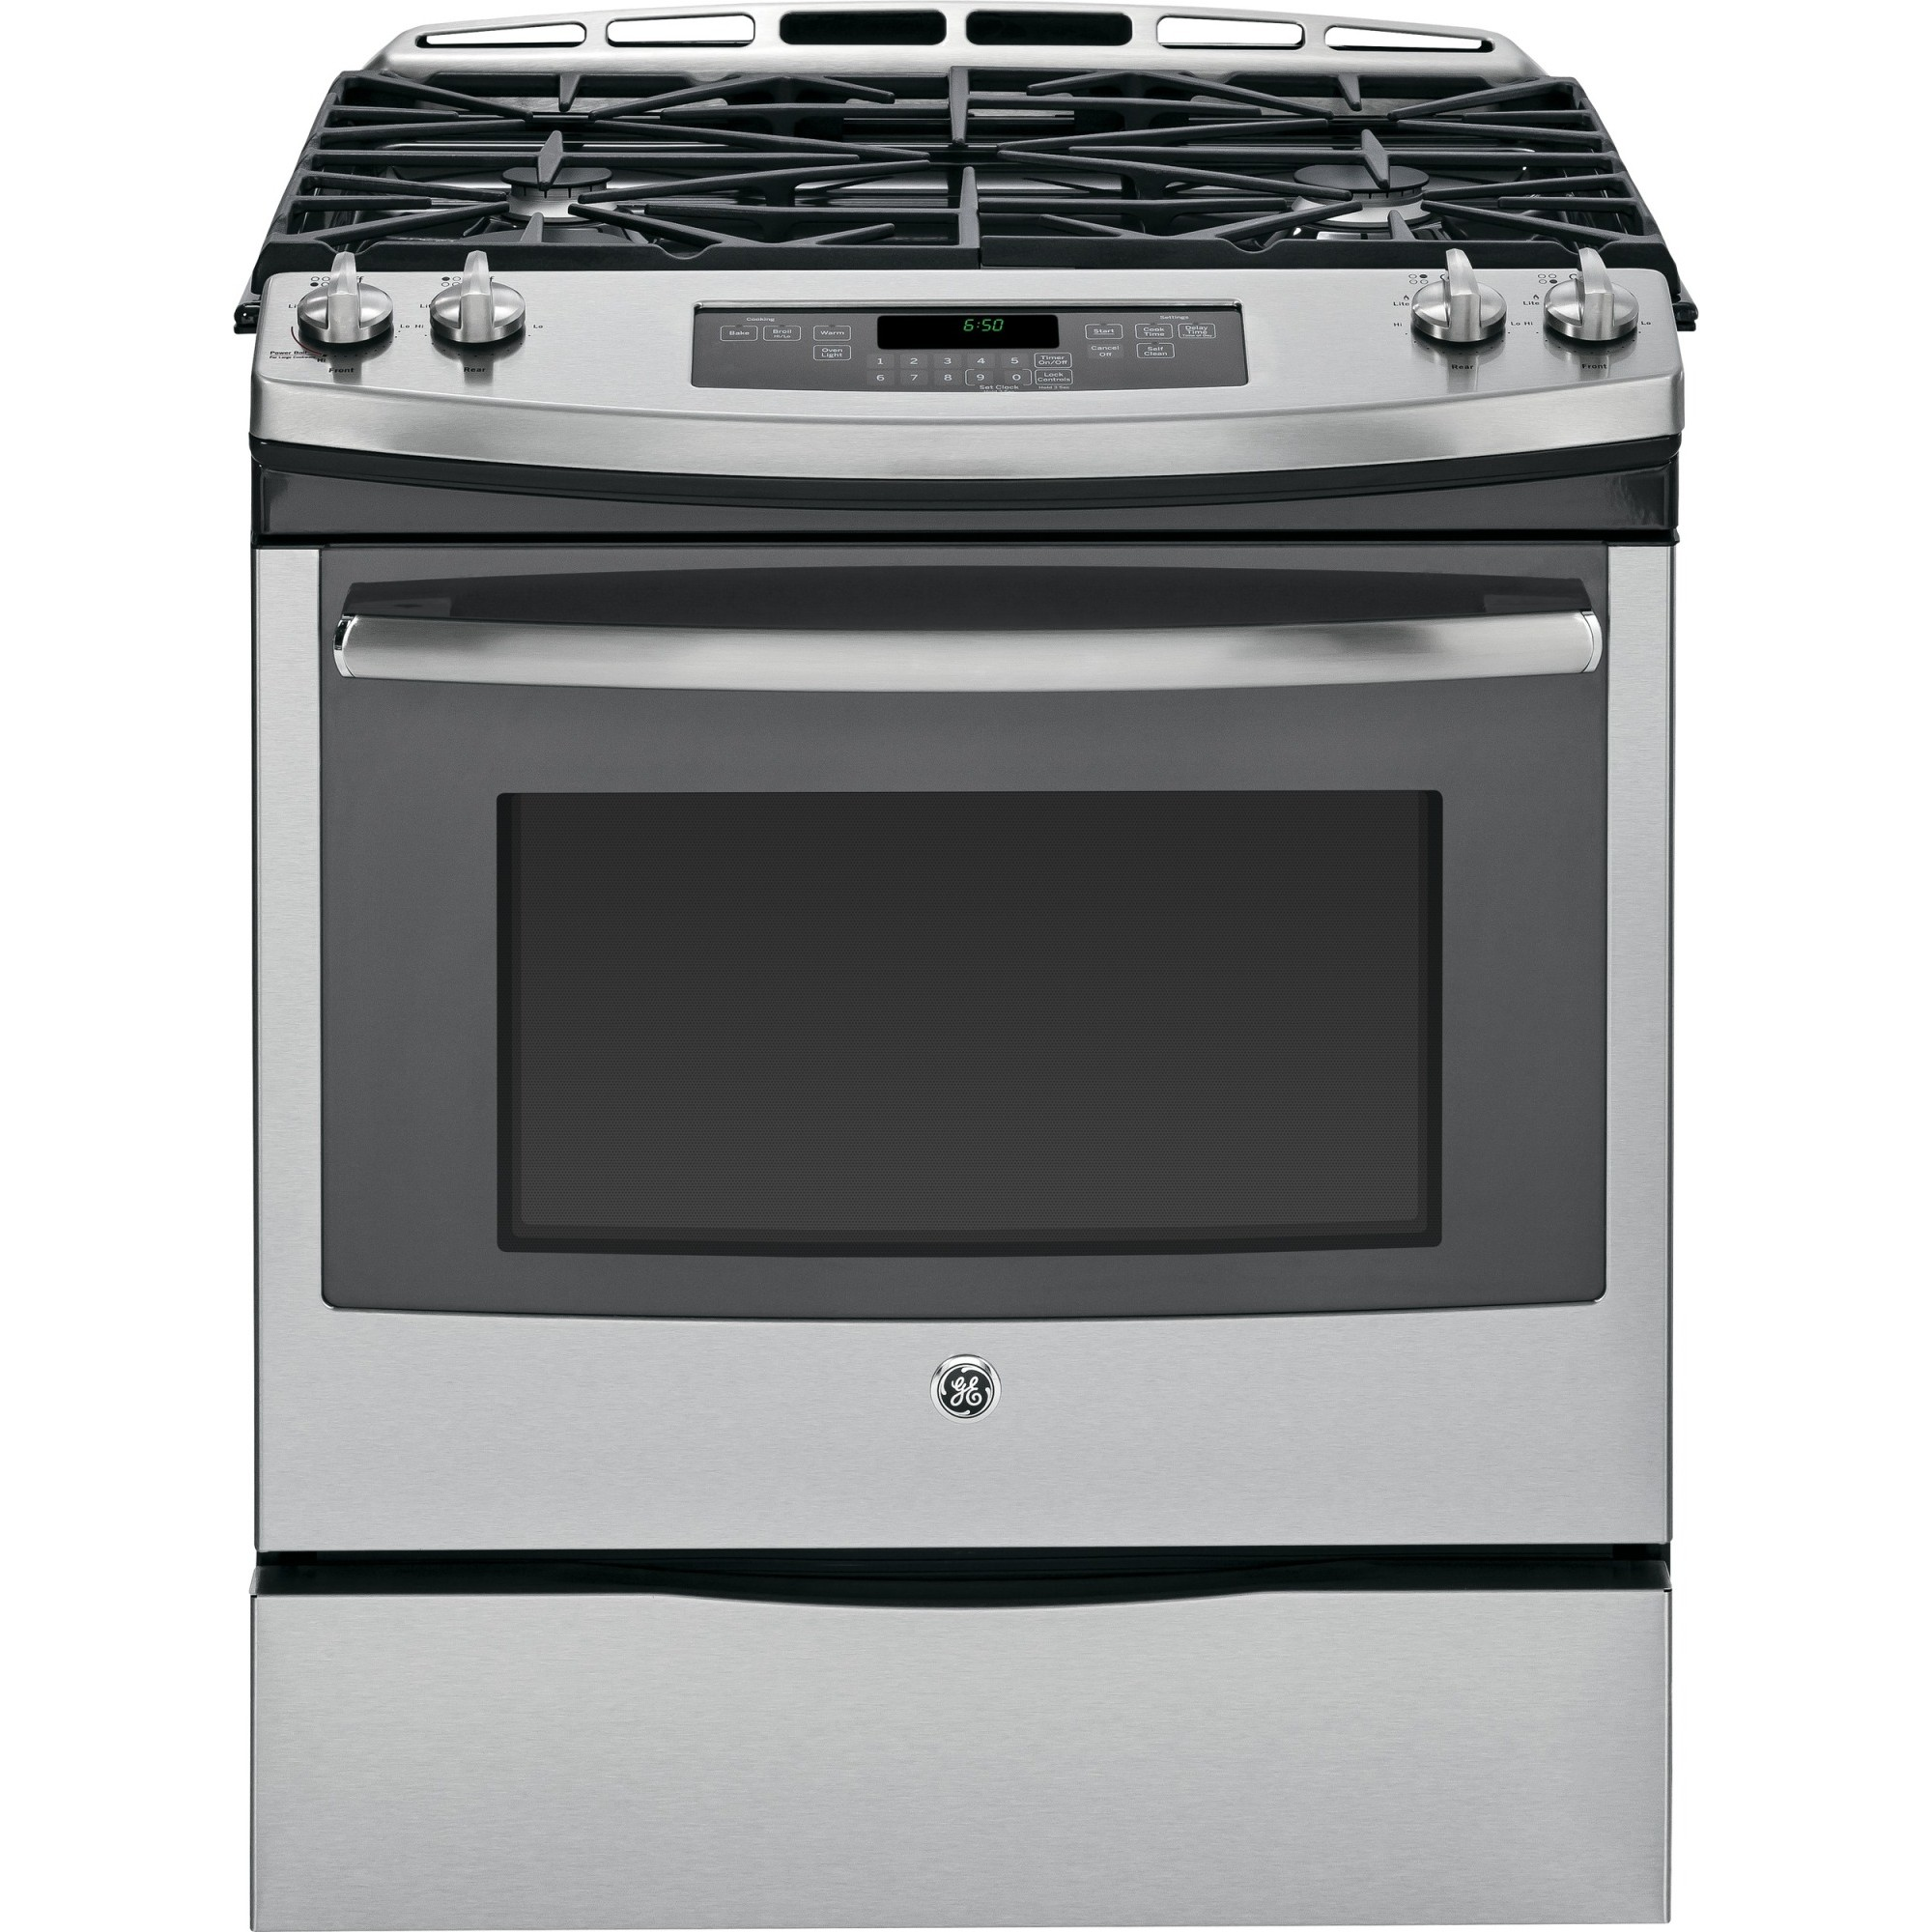 Stainless Steel Electric Stove ~ Jgs sefss ge quot slide in front control gas range